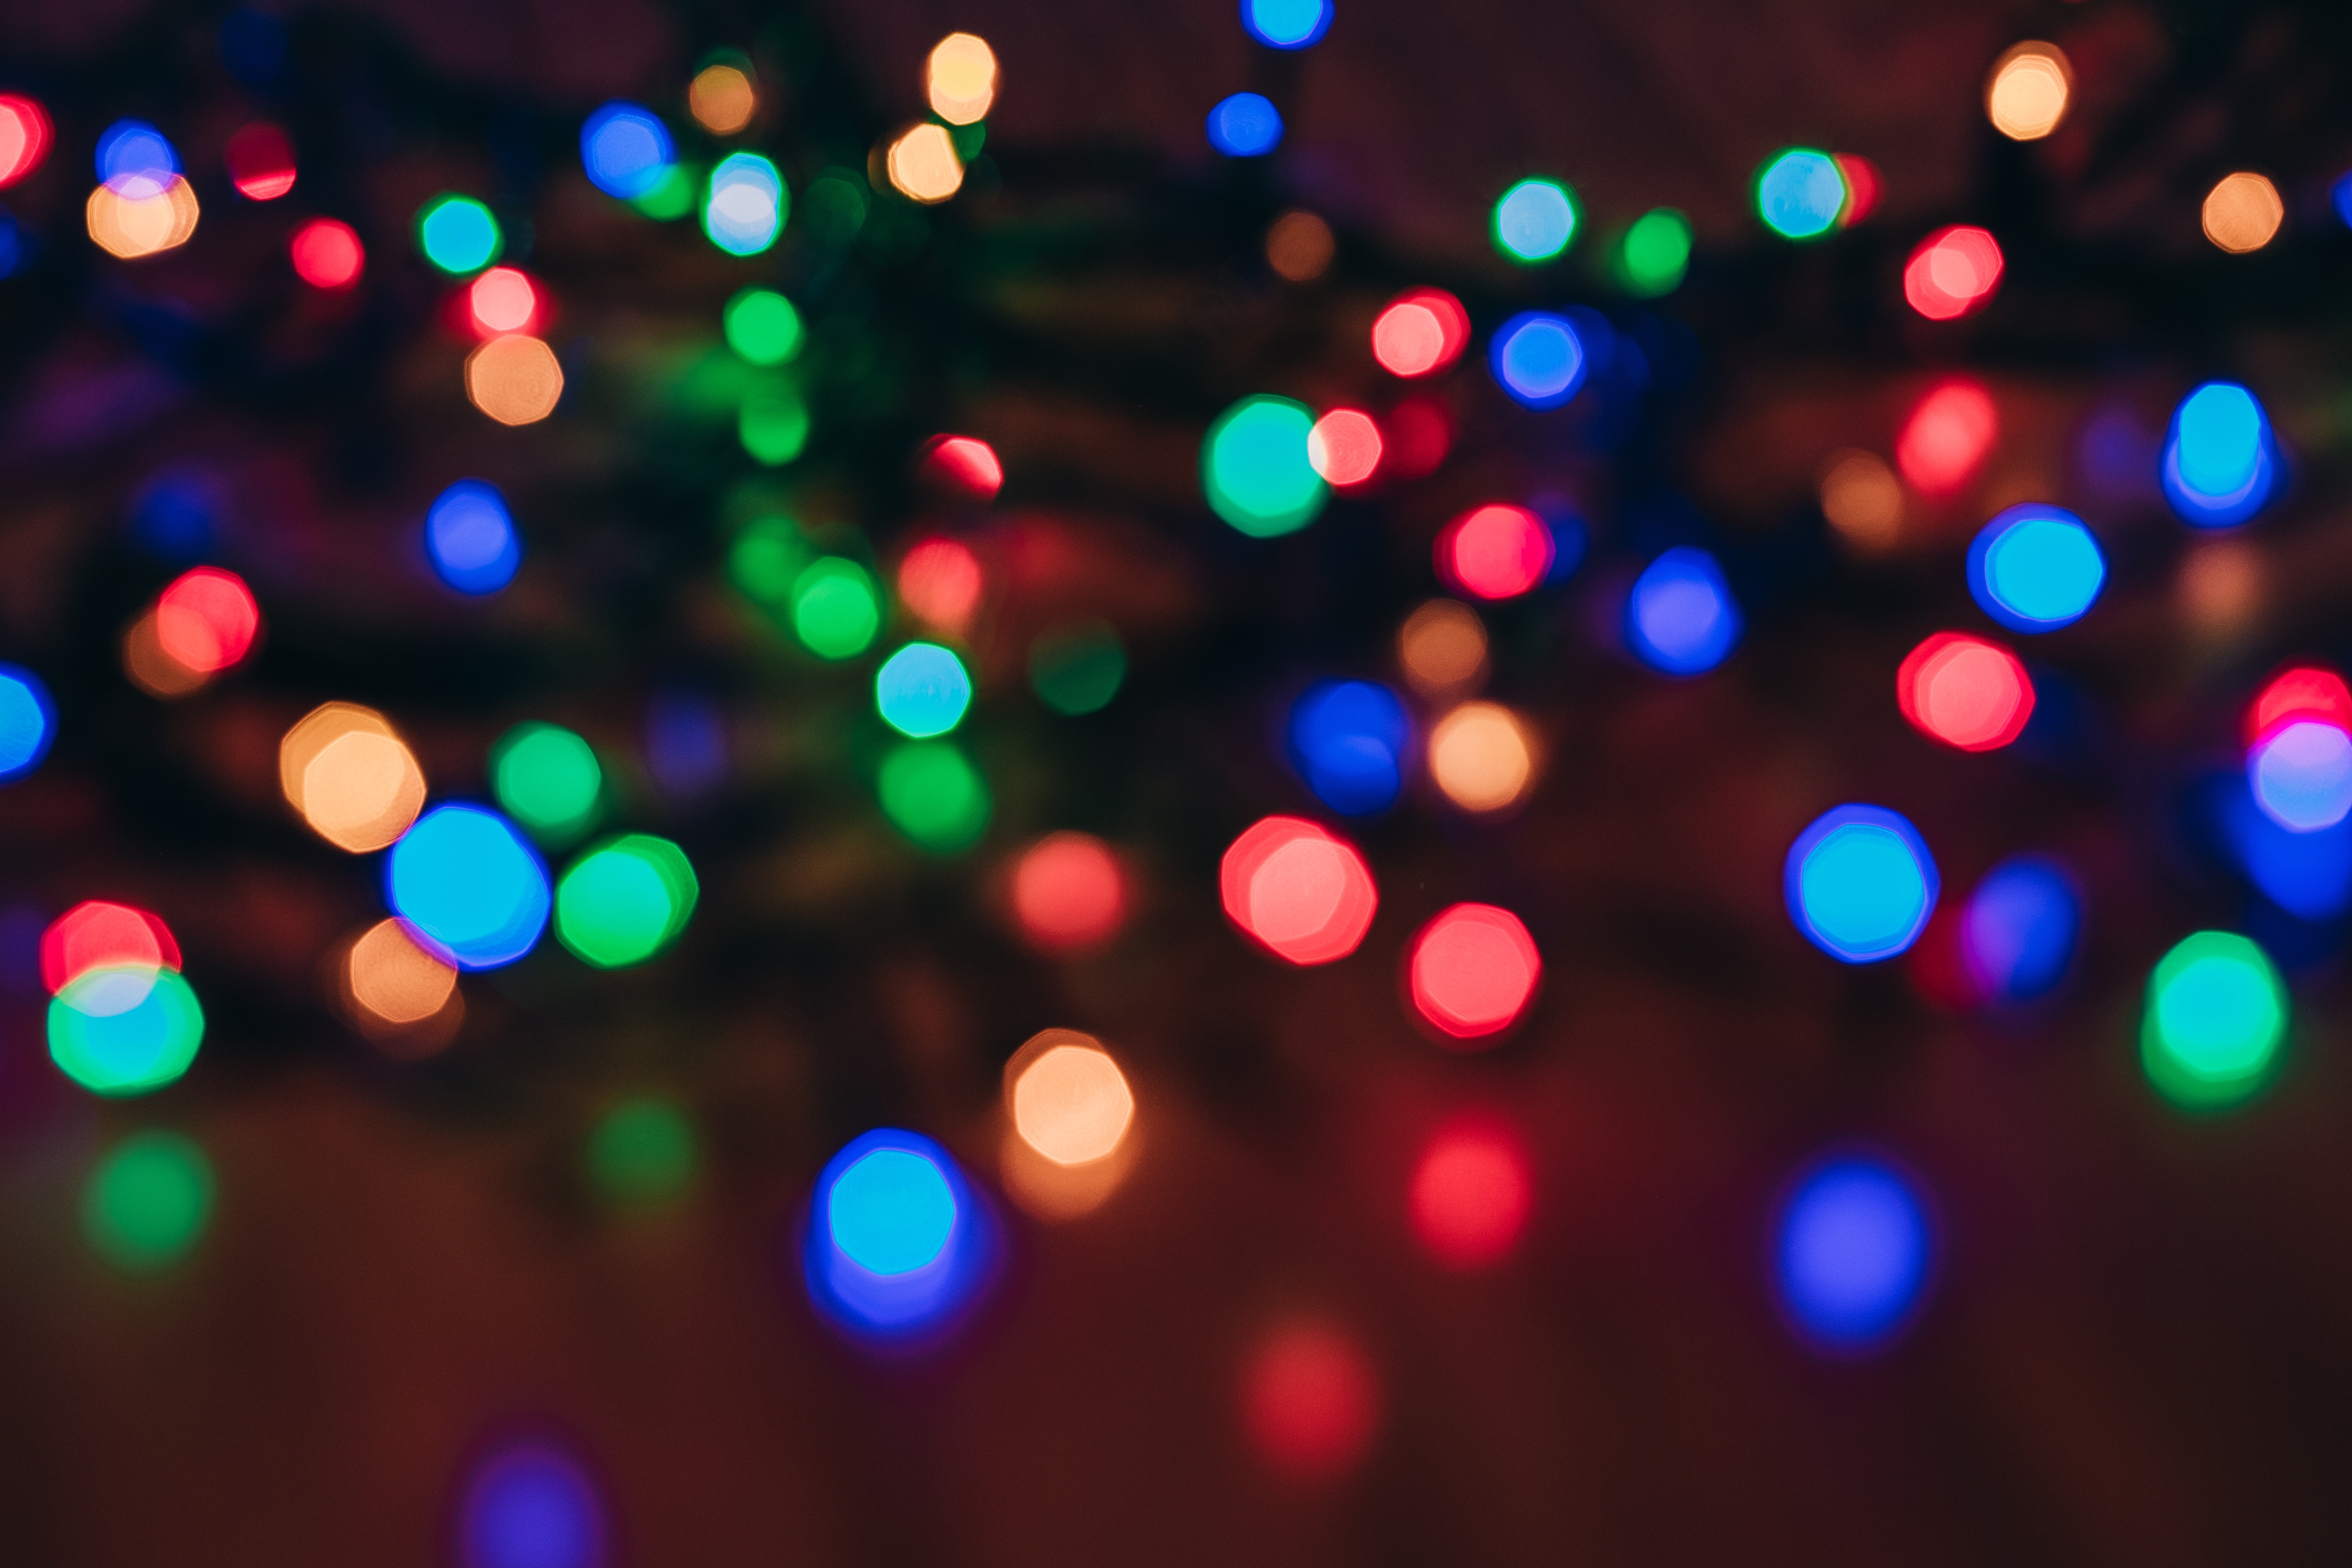 Lighted String Lights 183 Free Stock Photo